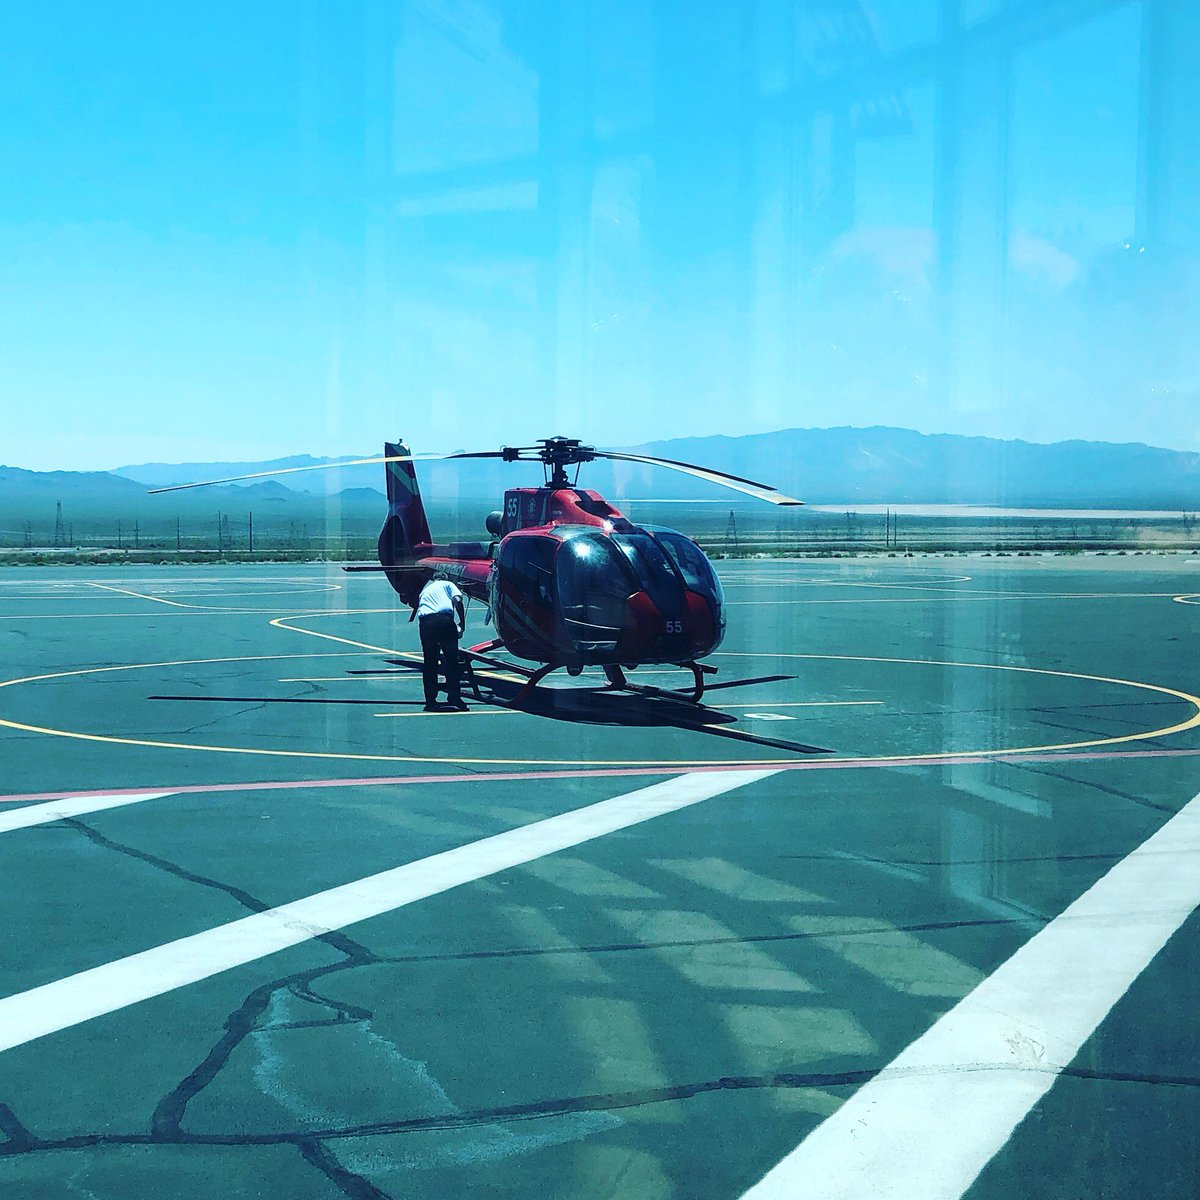 JamieMariaS: Ready to see the Grand Canyon! 🤩 #roadtoimagine #helicopter https://t.co/2IG3QyurVJ